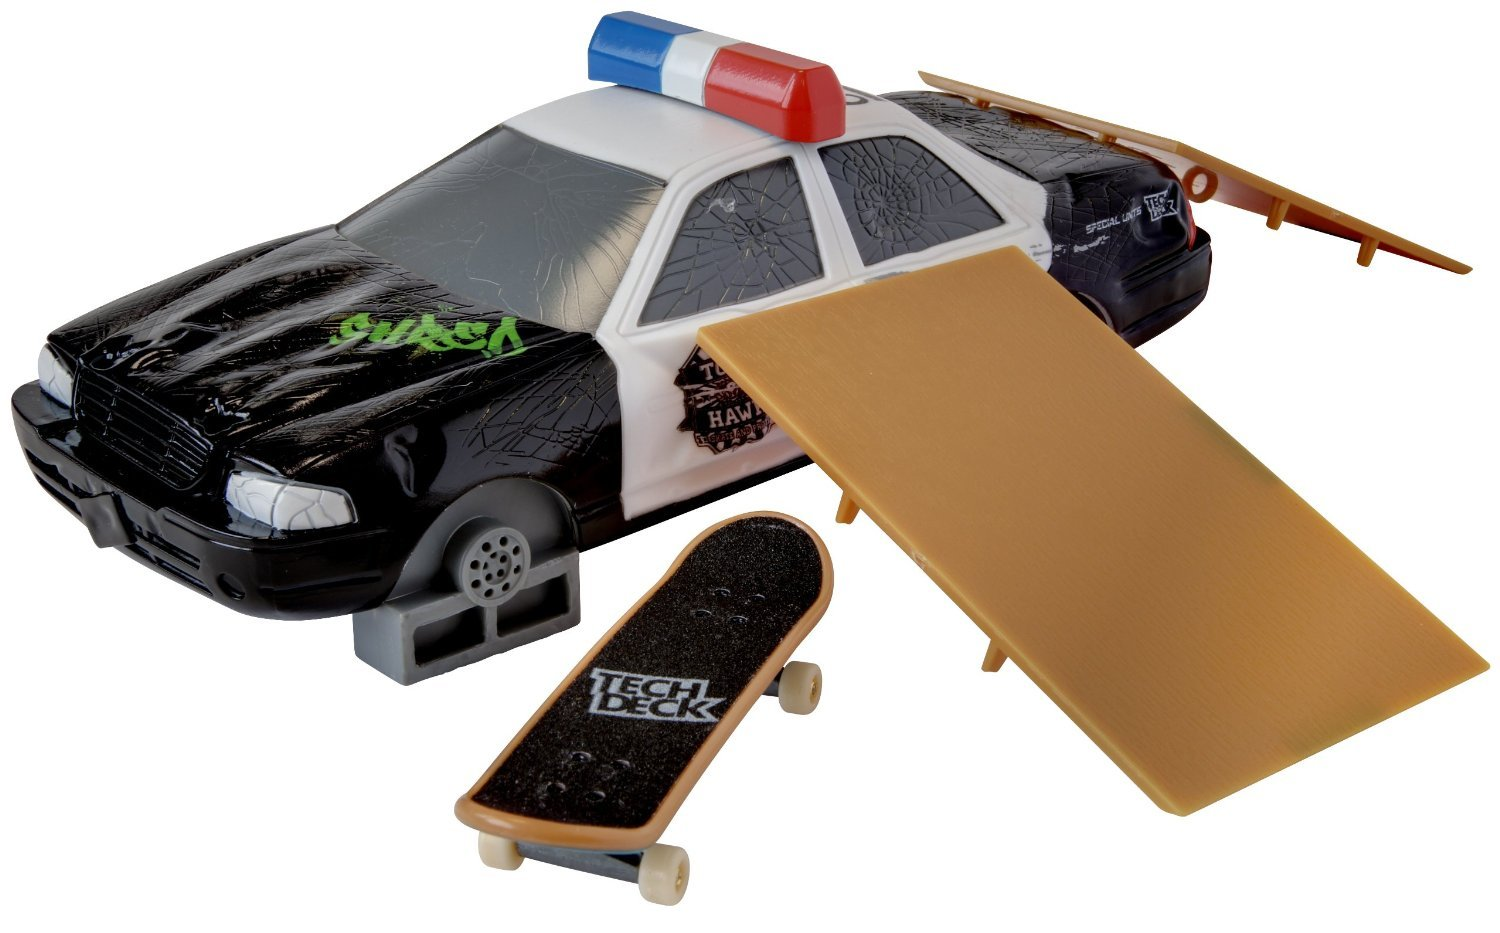 Tech Deck Tony Hawk Shred FX Ramp by Tech Deck